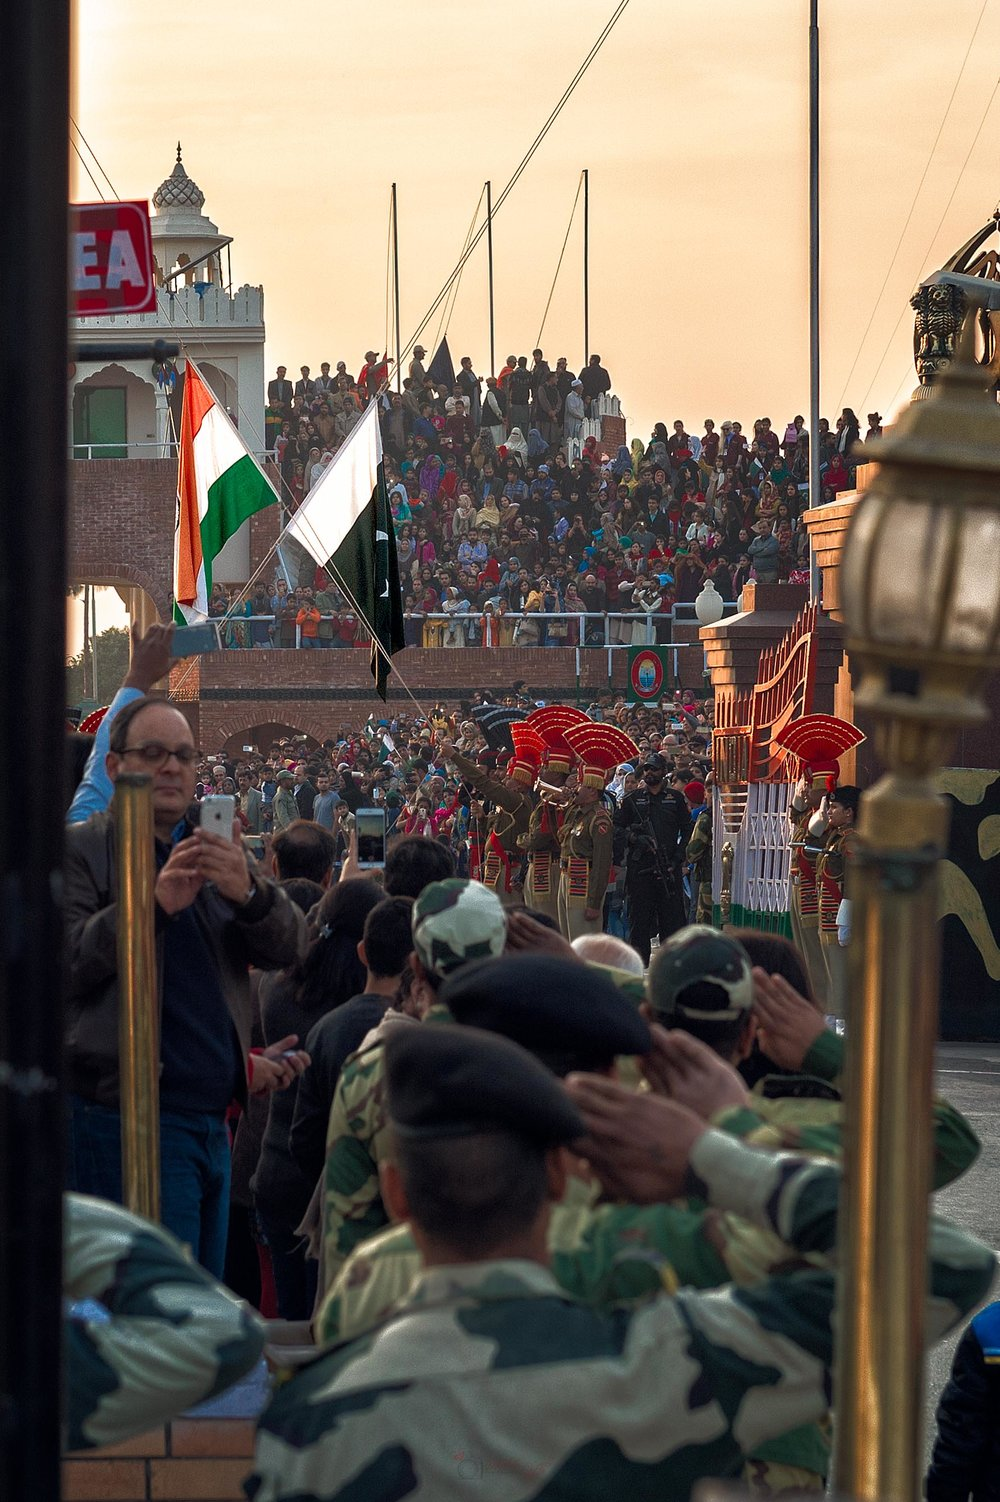 The Wagah (Wagha) Border Ceremony is basically a flag lowering ceremony which is observed by both countries daily.